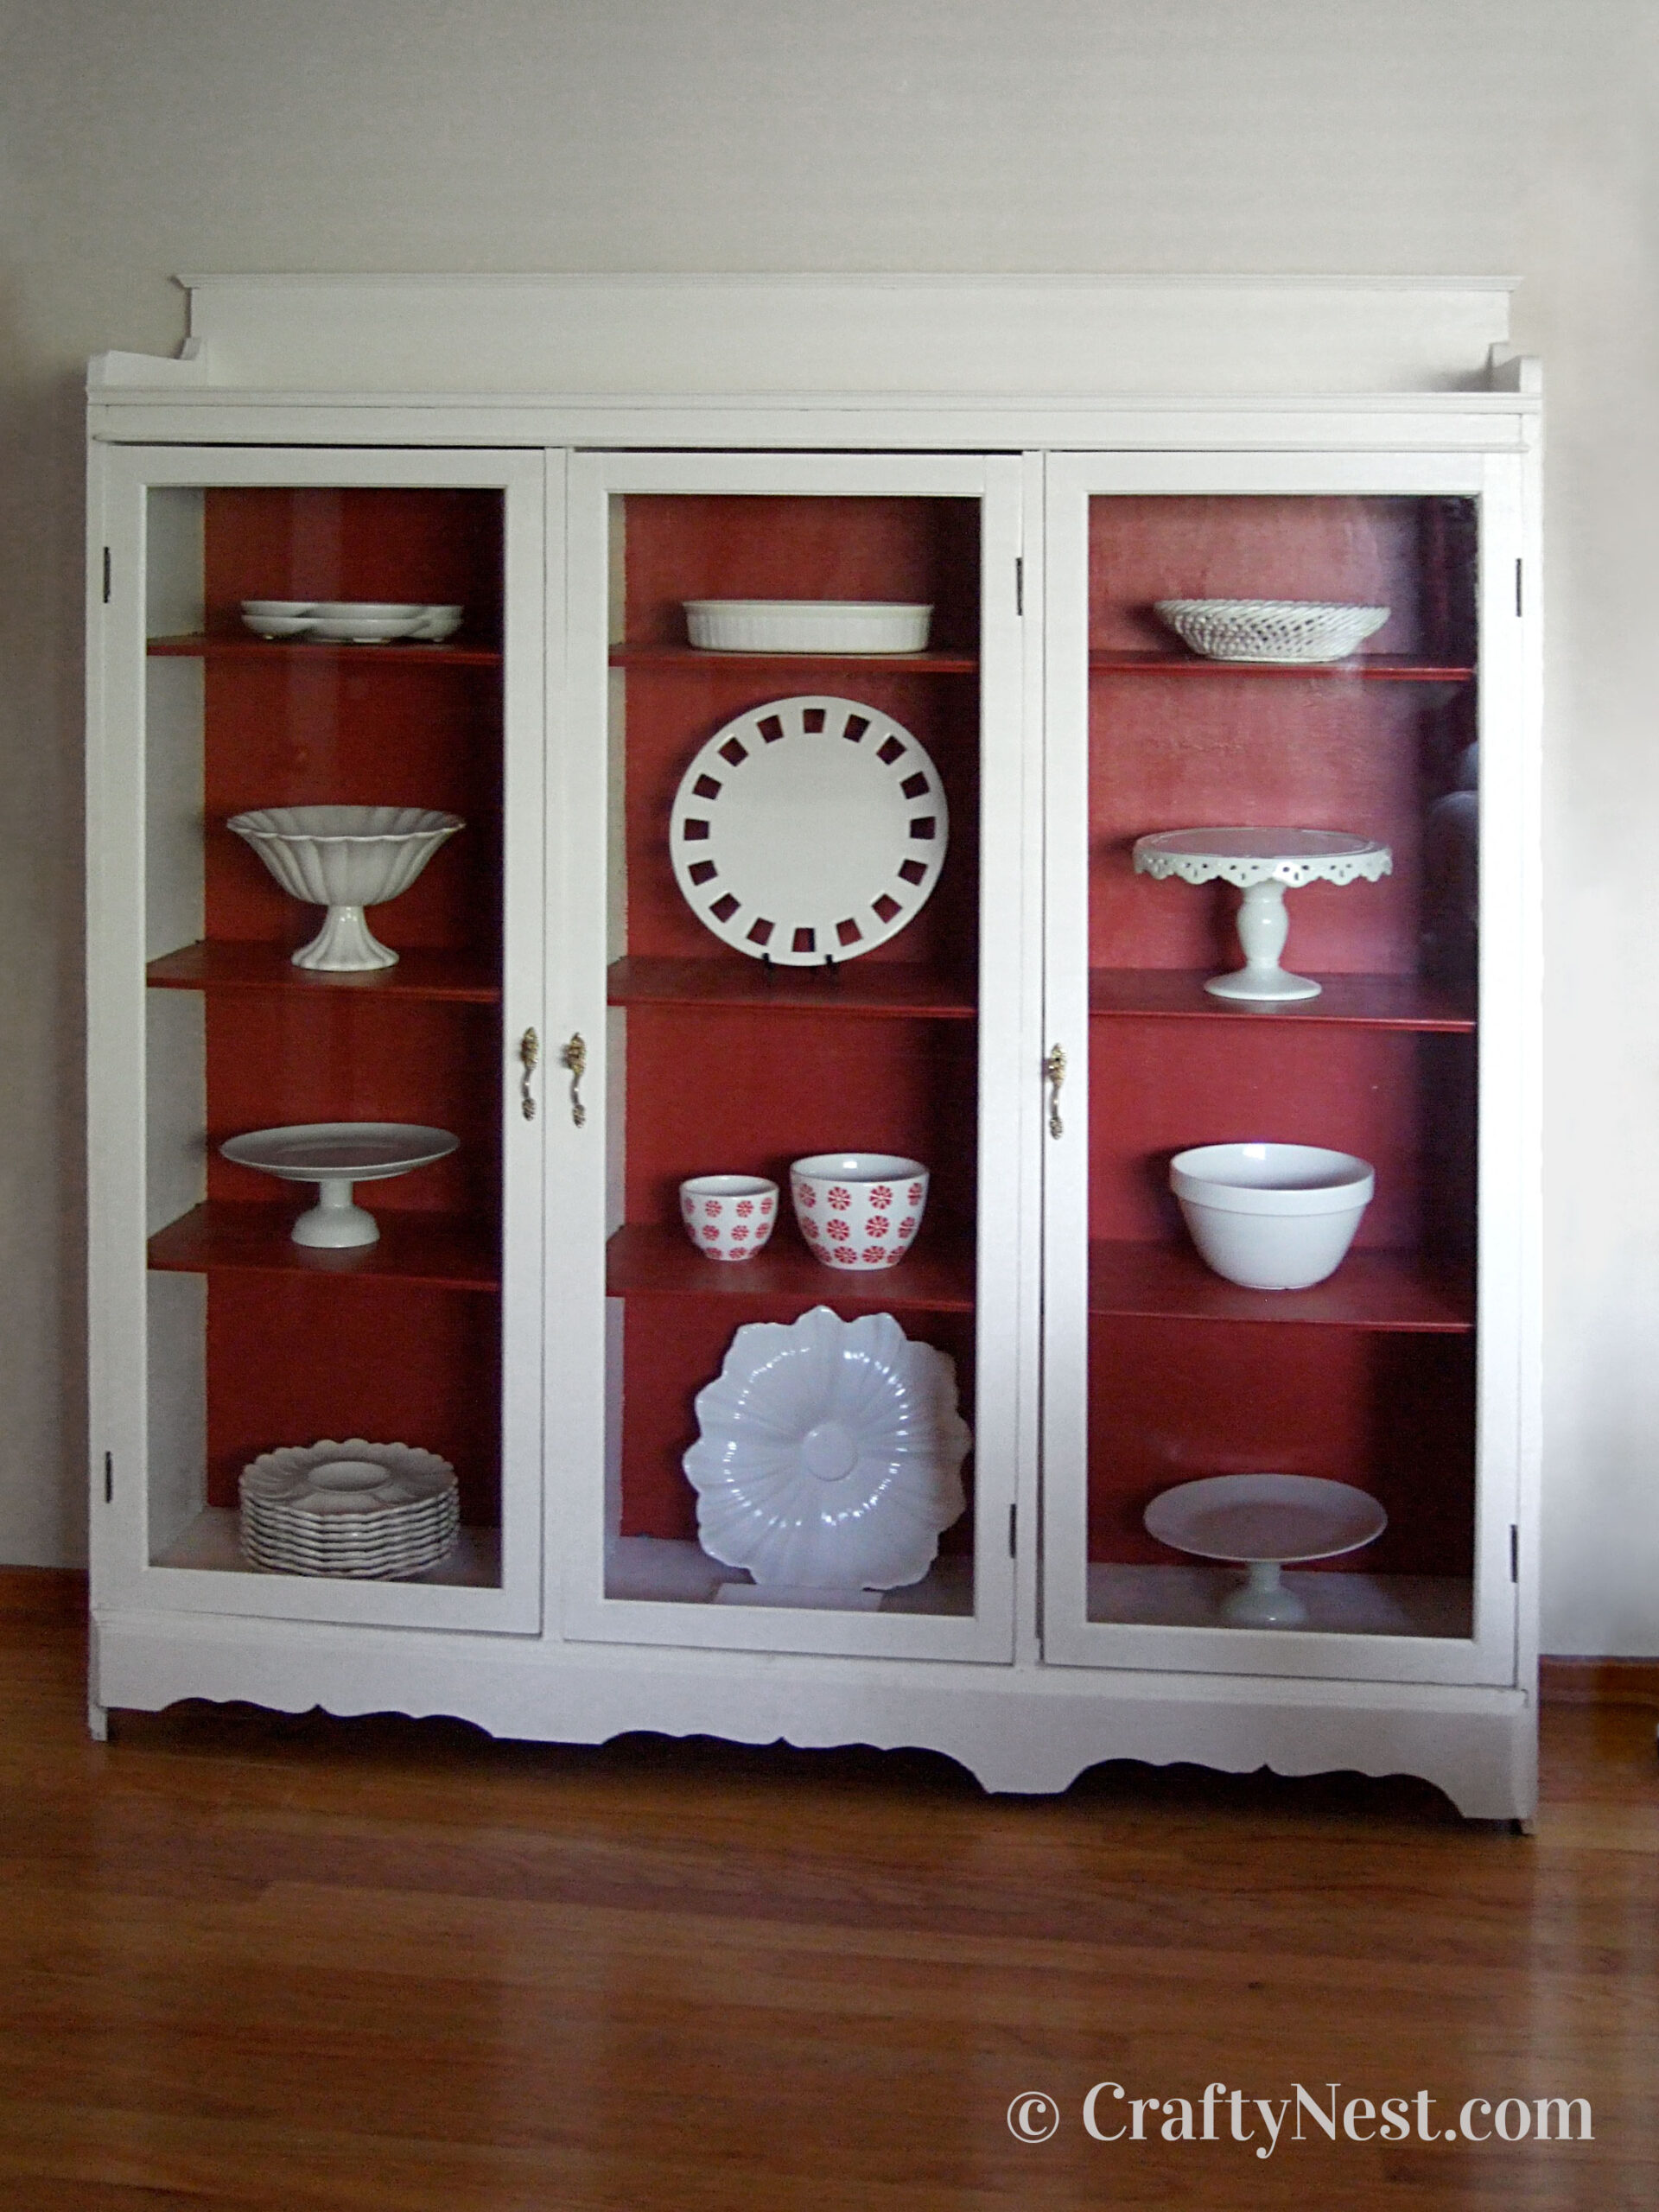 Red and white bookshelf with glass doors and white dishes inside, photo